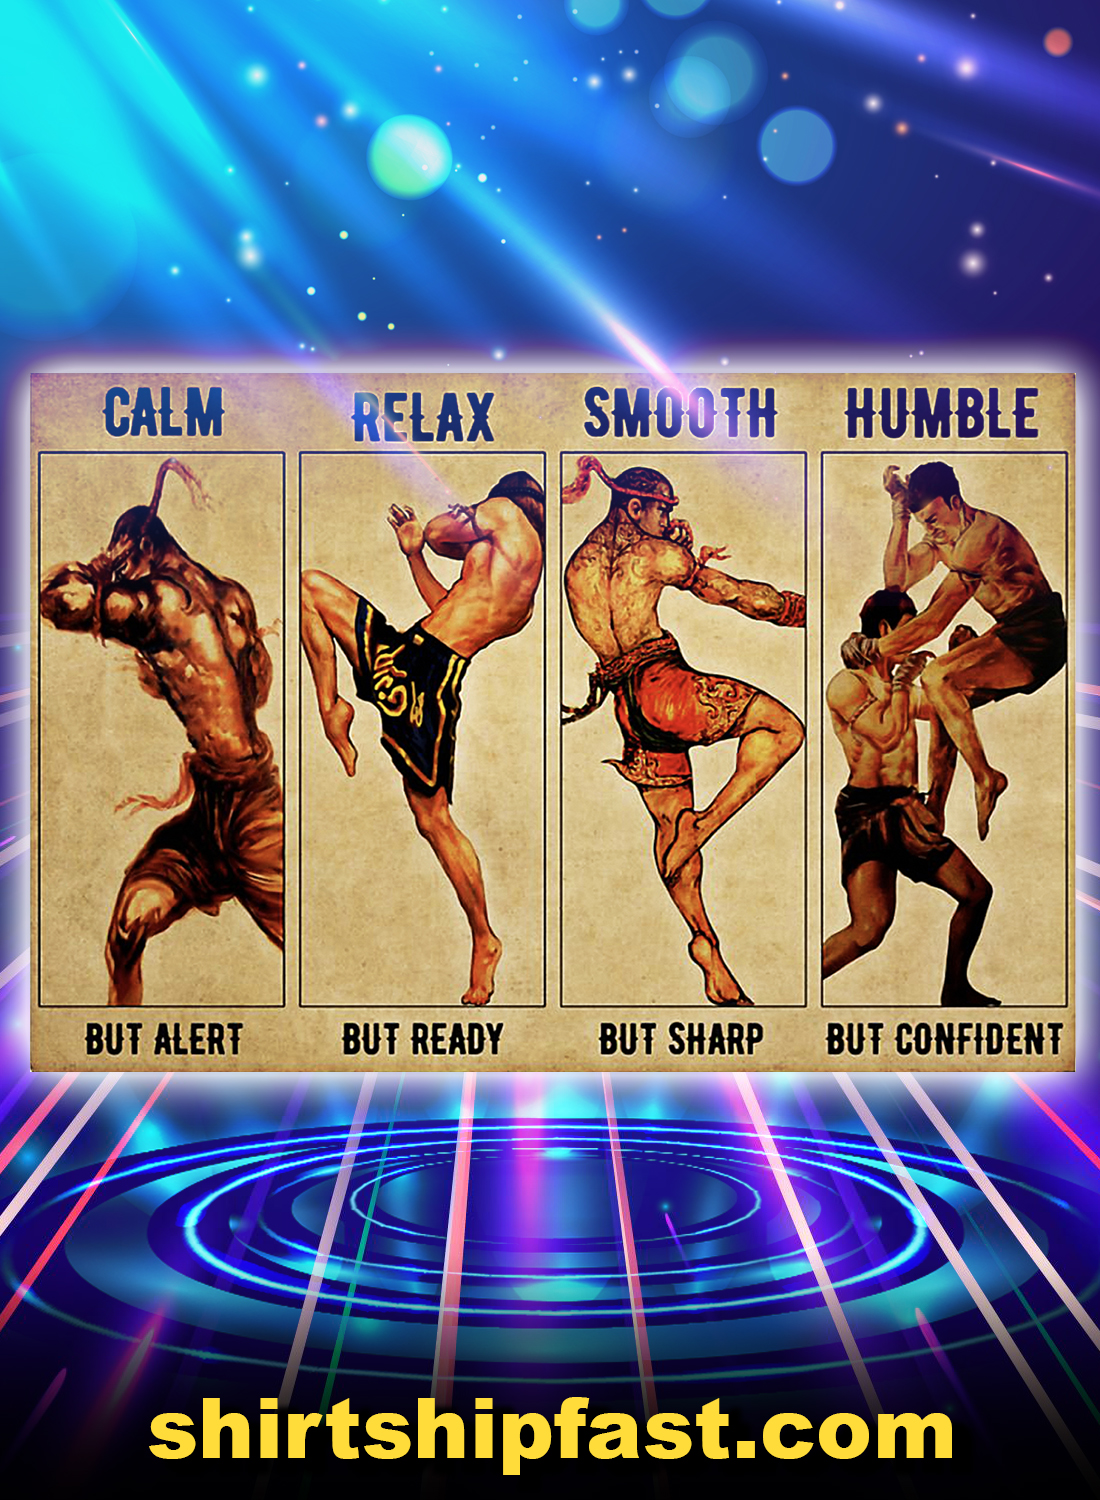 Poster Muay Thai Calm relax smooth humble - A4